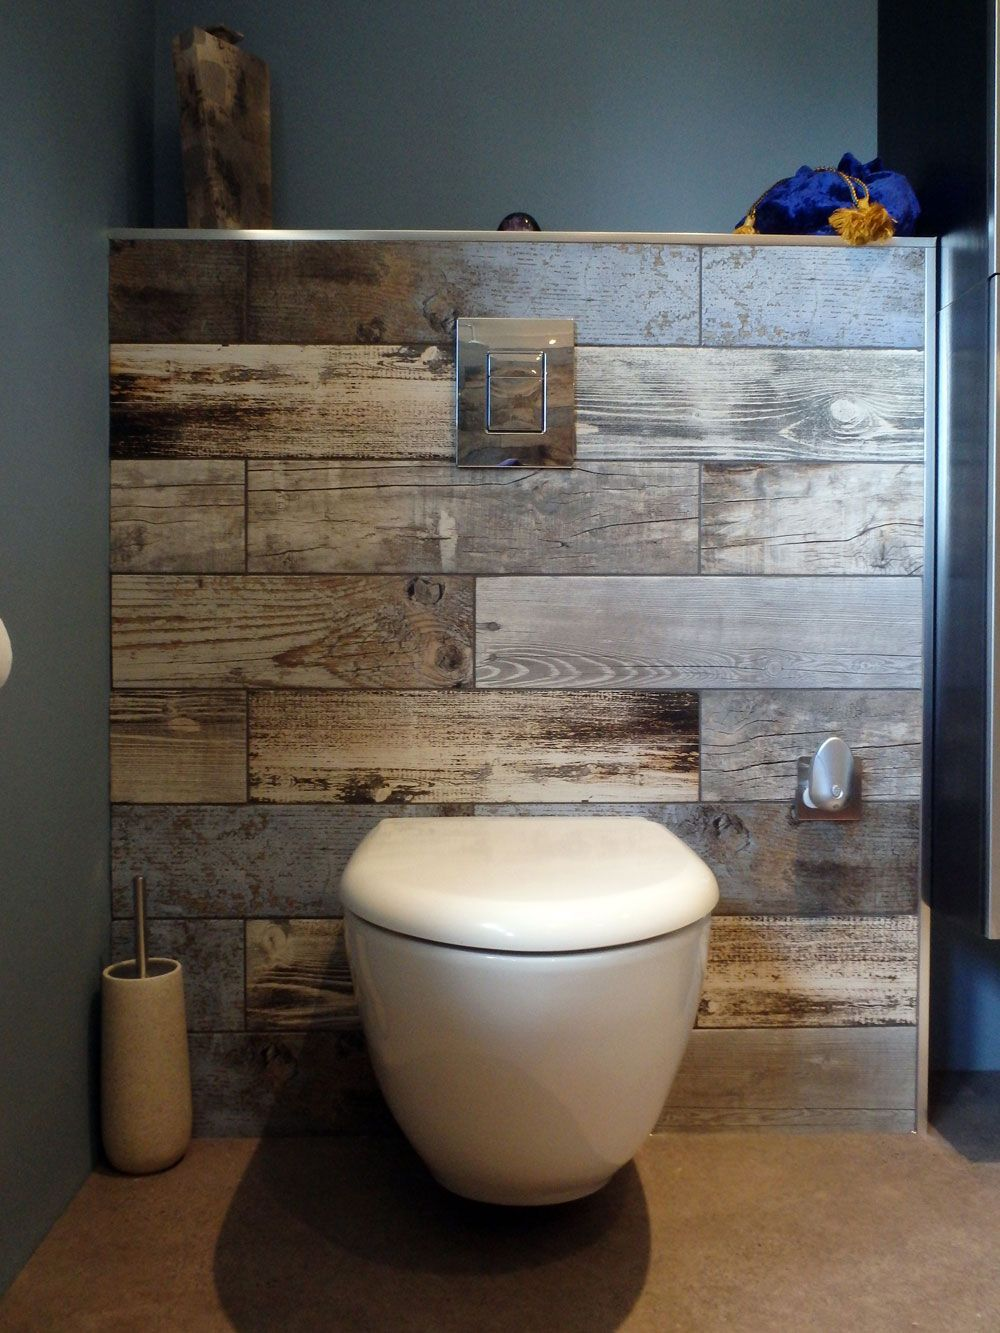 Toilet Wood Effect Tiles Wood Wall Bathroom Wood Tile Bathroom Tile Bathroom